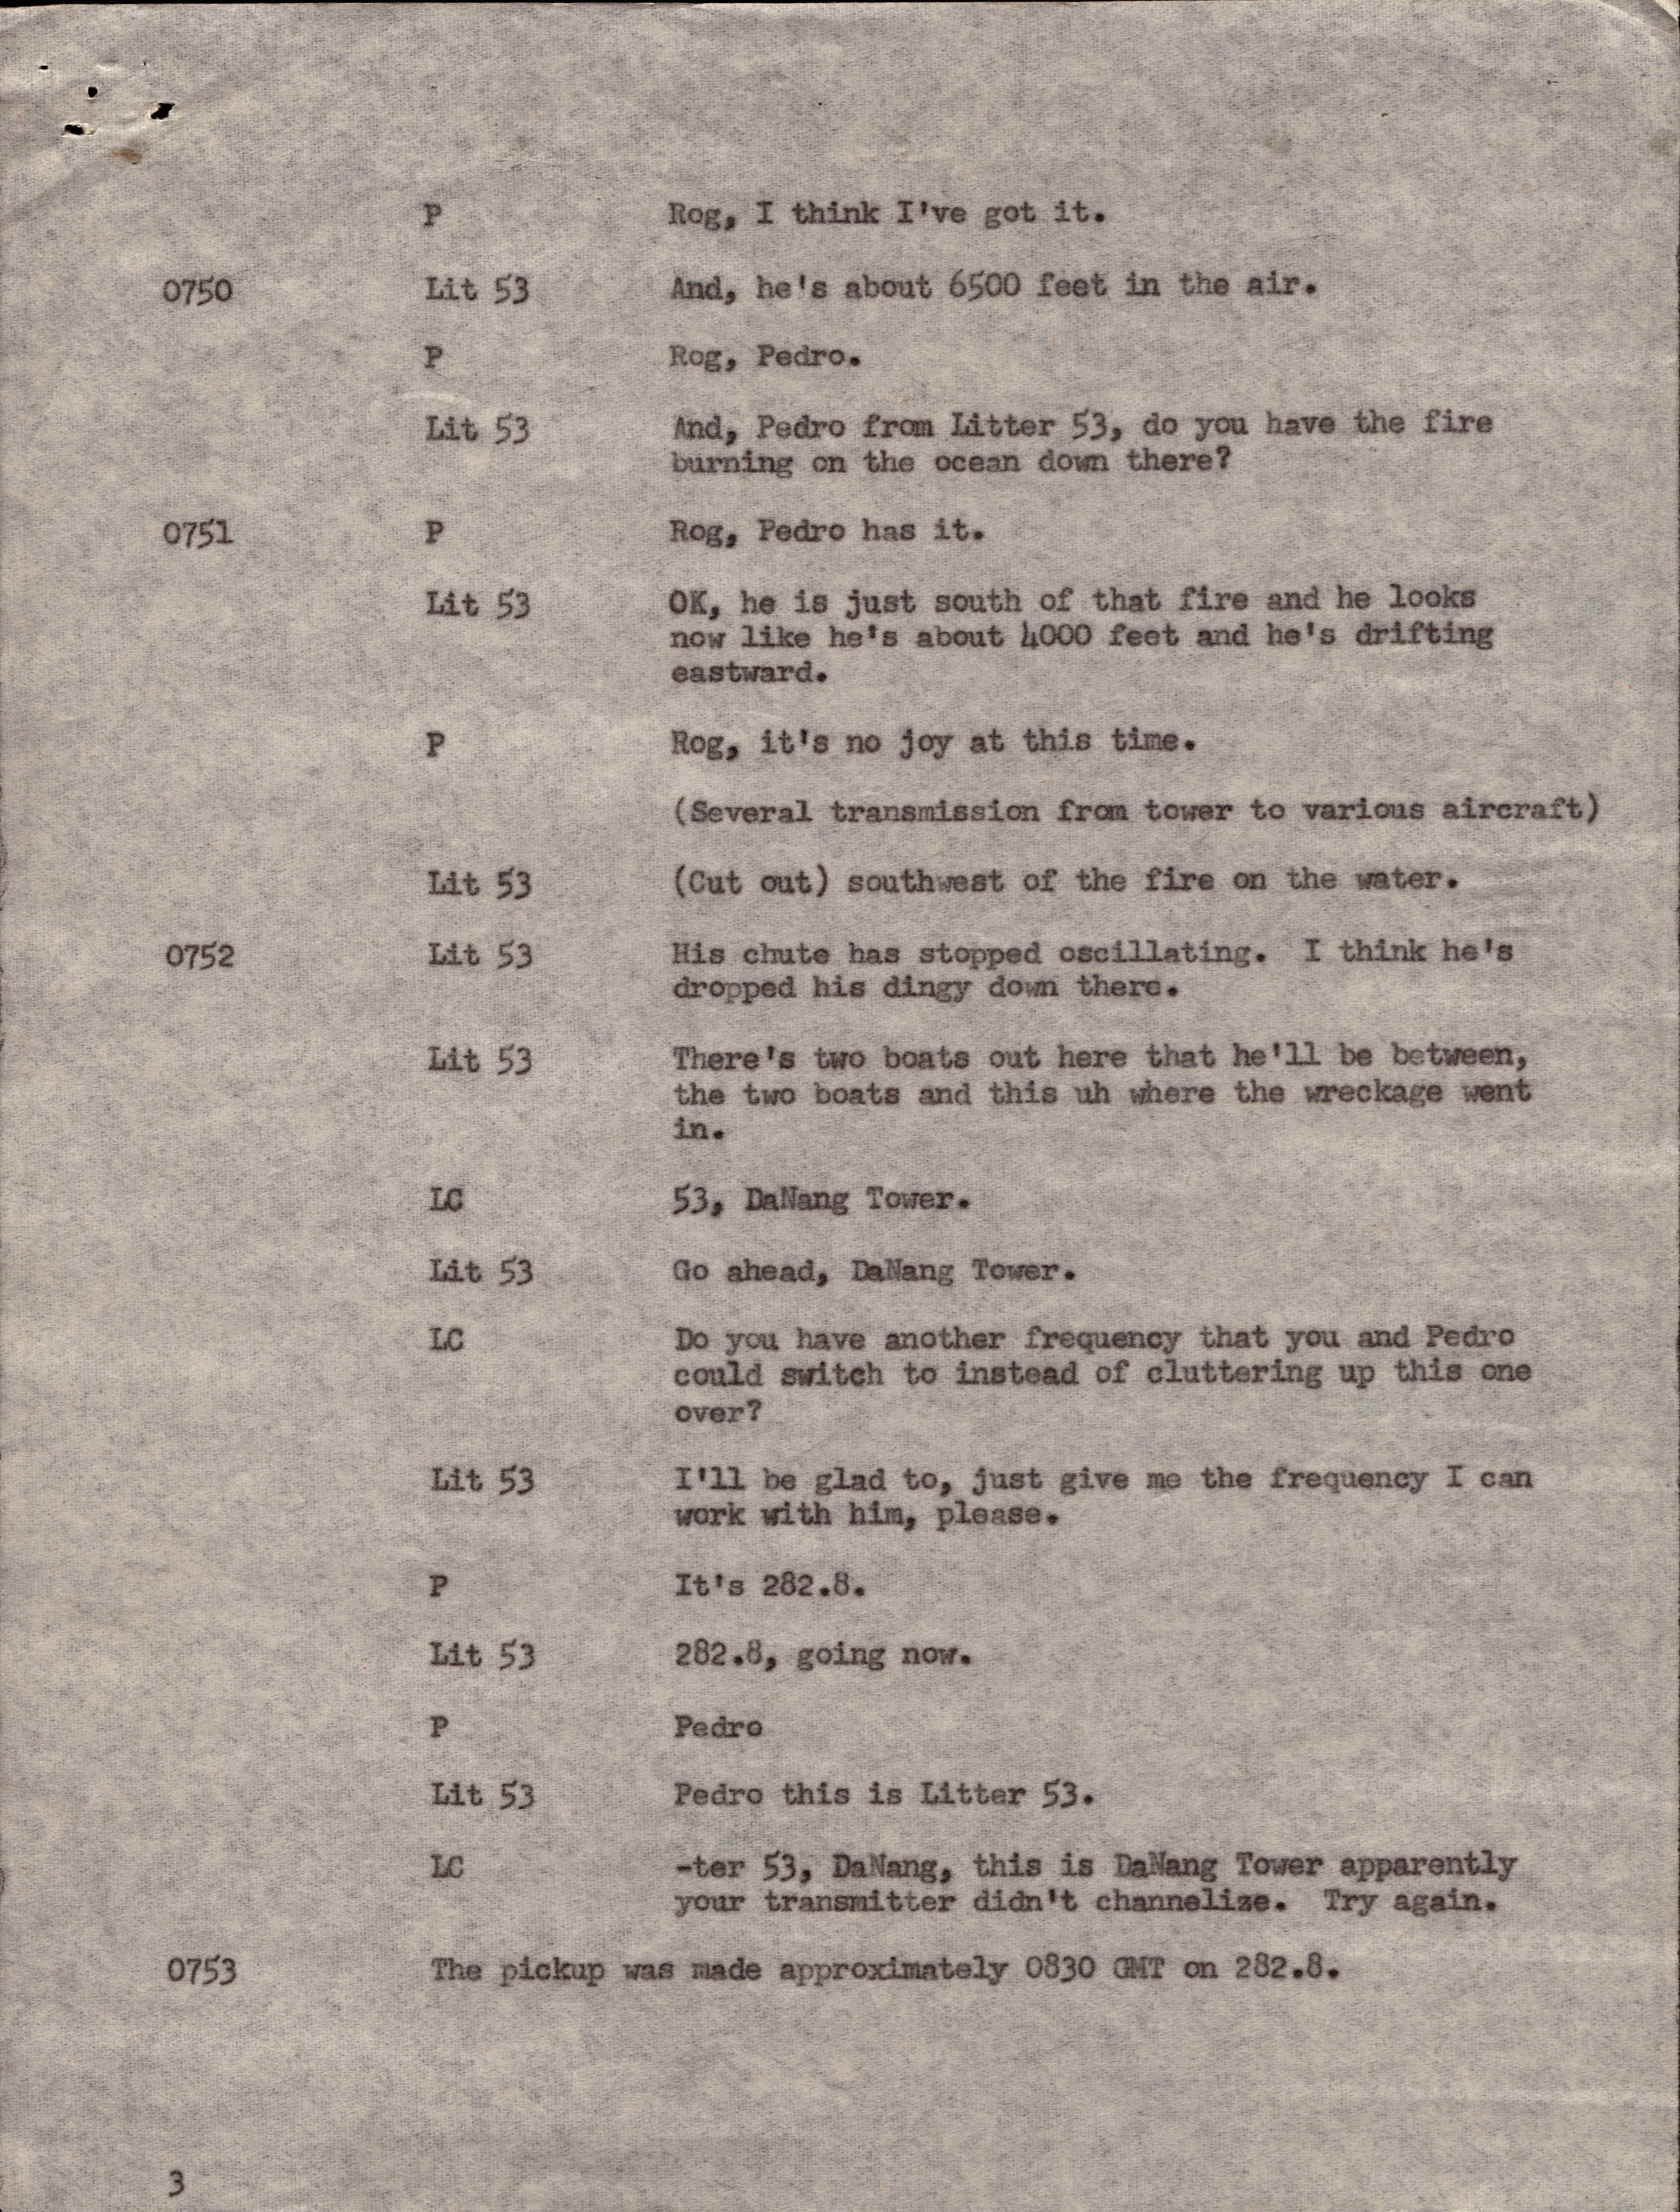 harry-roberts-plane-crash-transcript-p-3